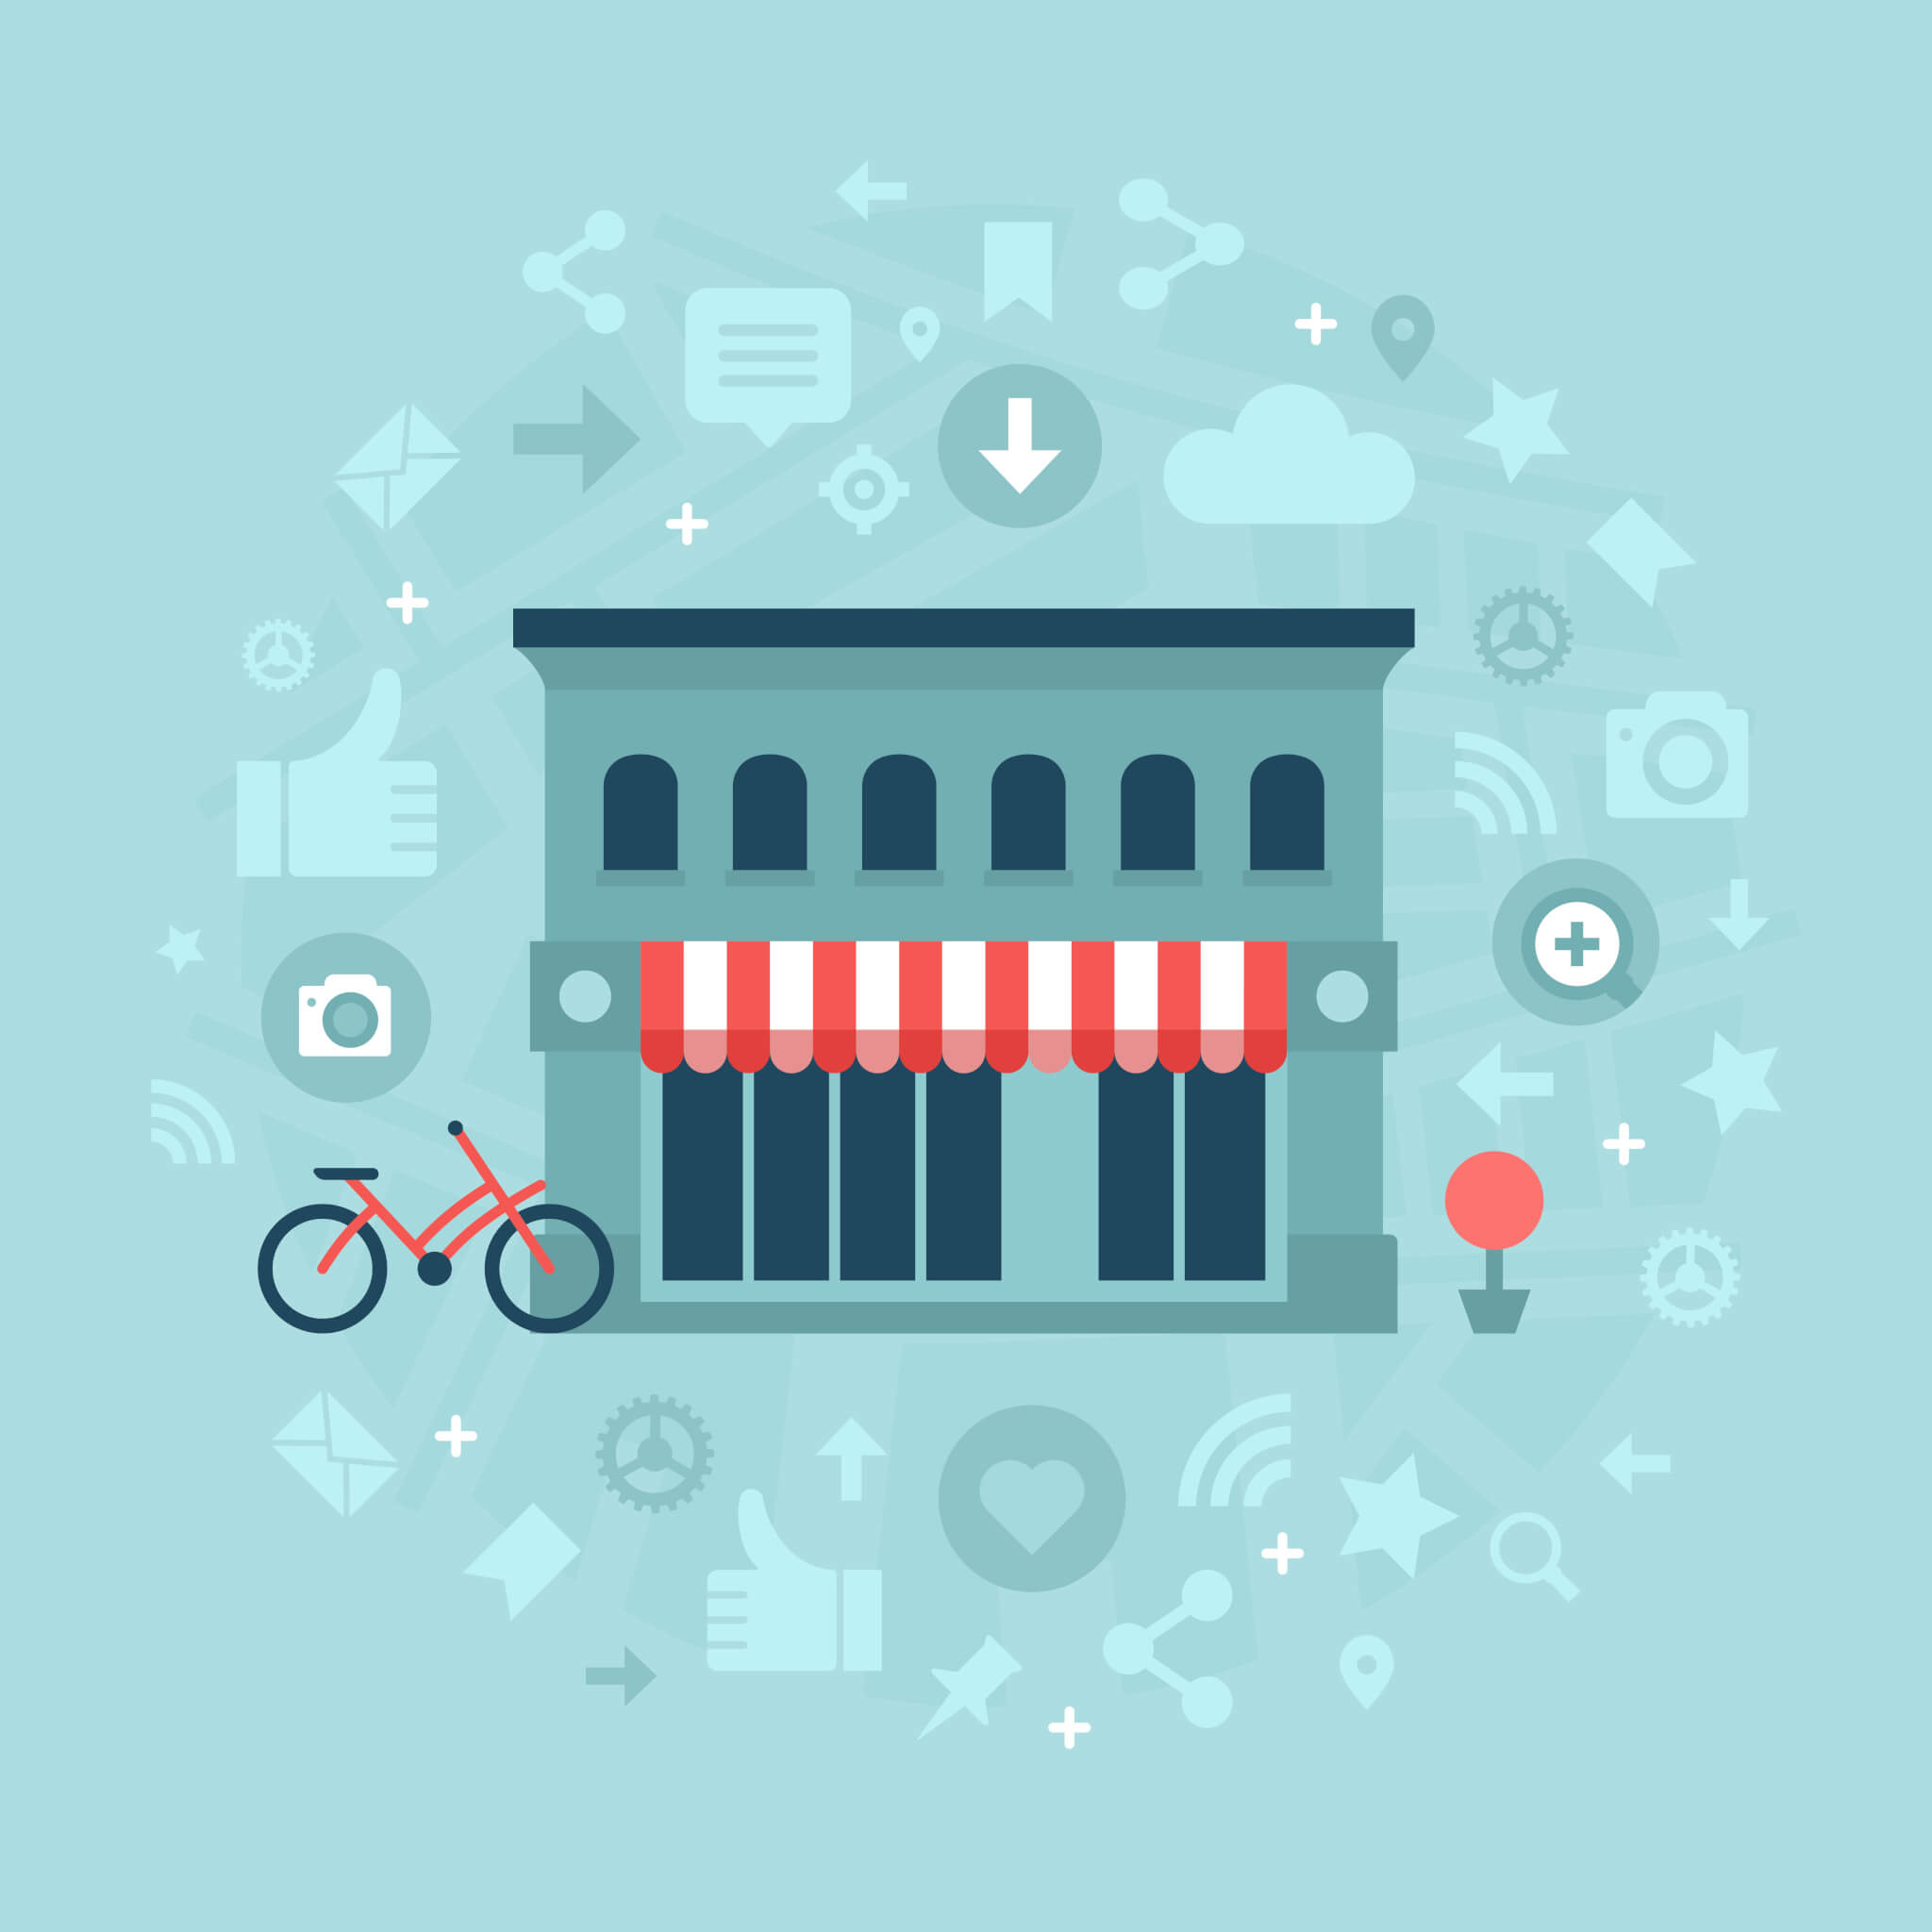 Why Social Media Marketing is Important for Local Businesses